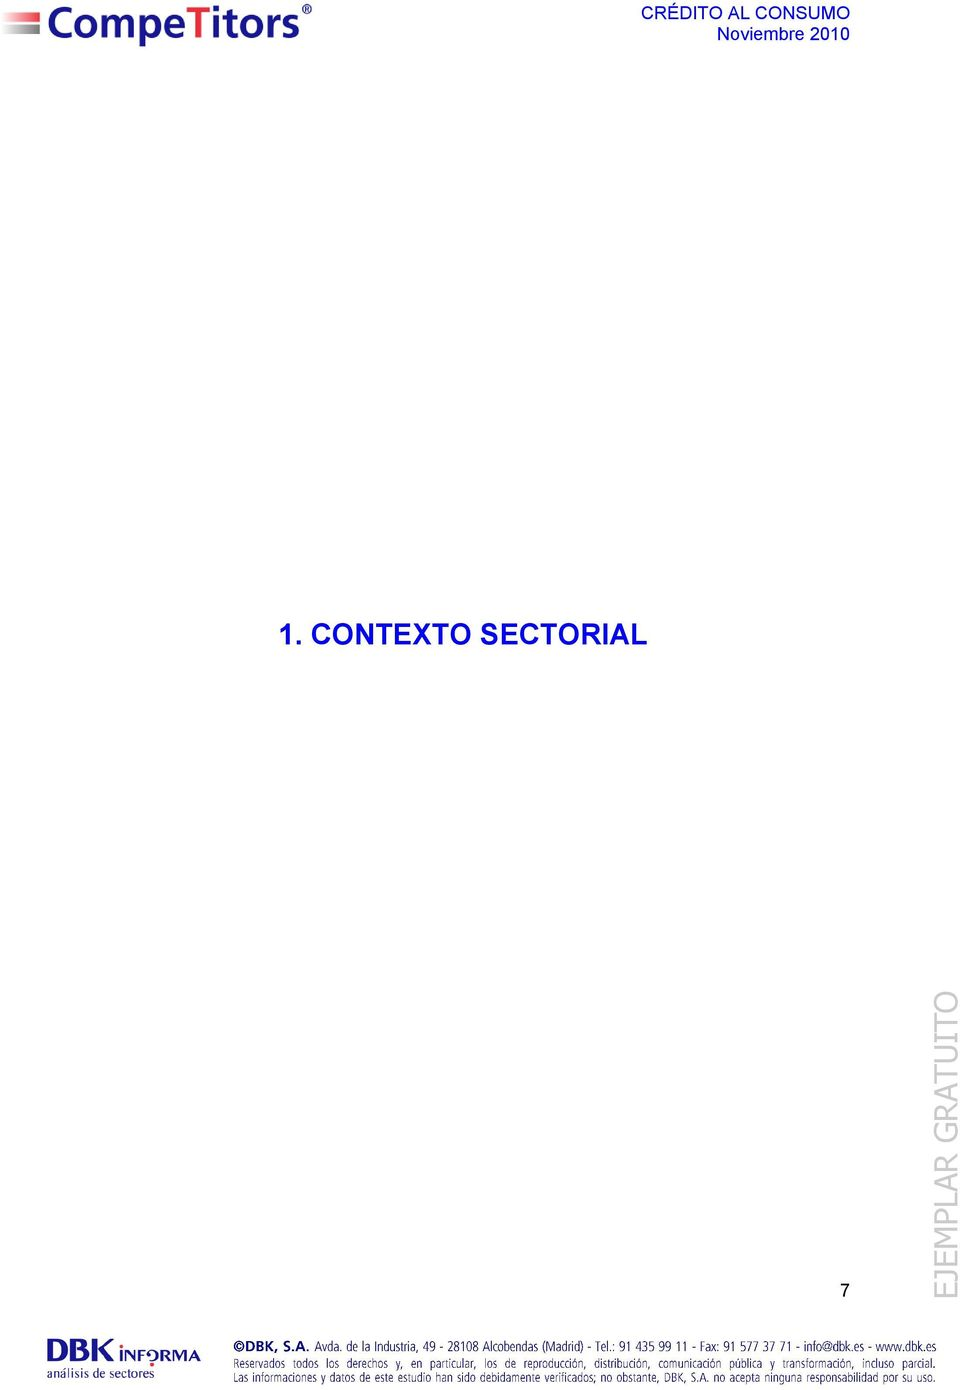 SECTORIAL